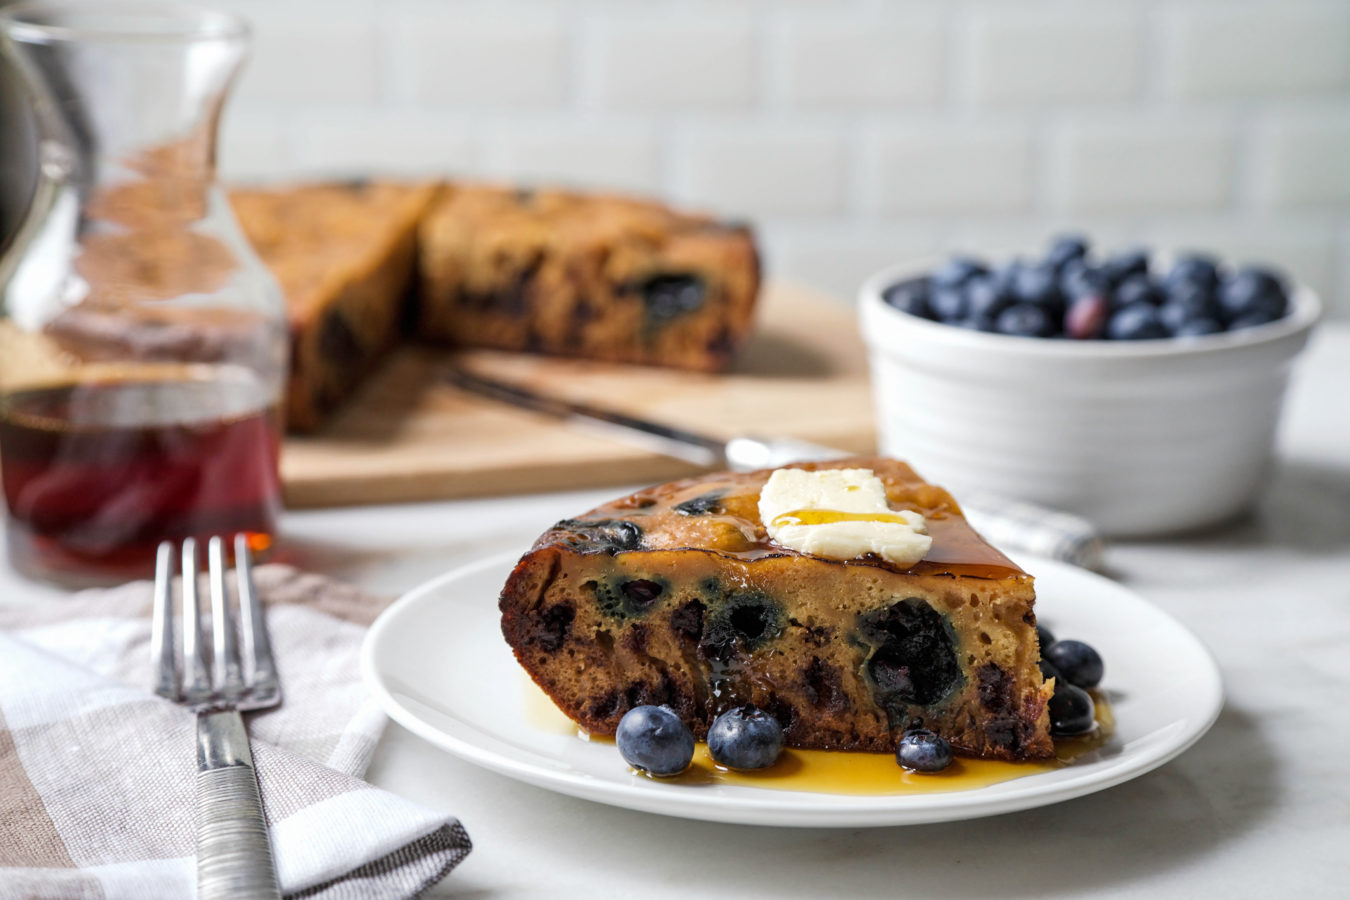 Giant Rice Cooker Pancake with Dark Chocolate Chips and Blueberries